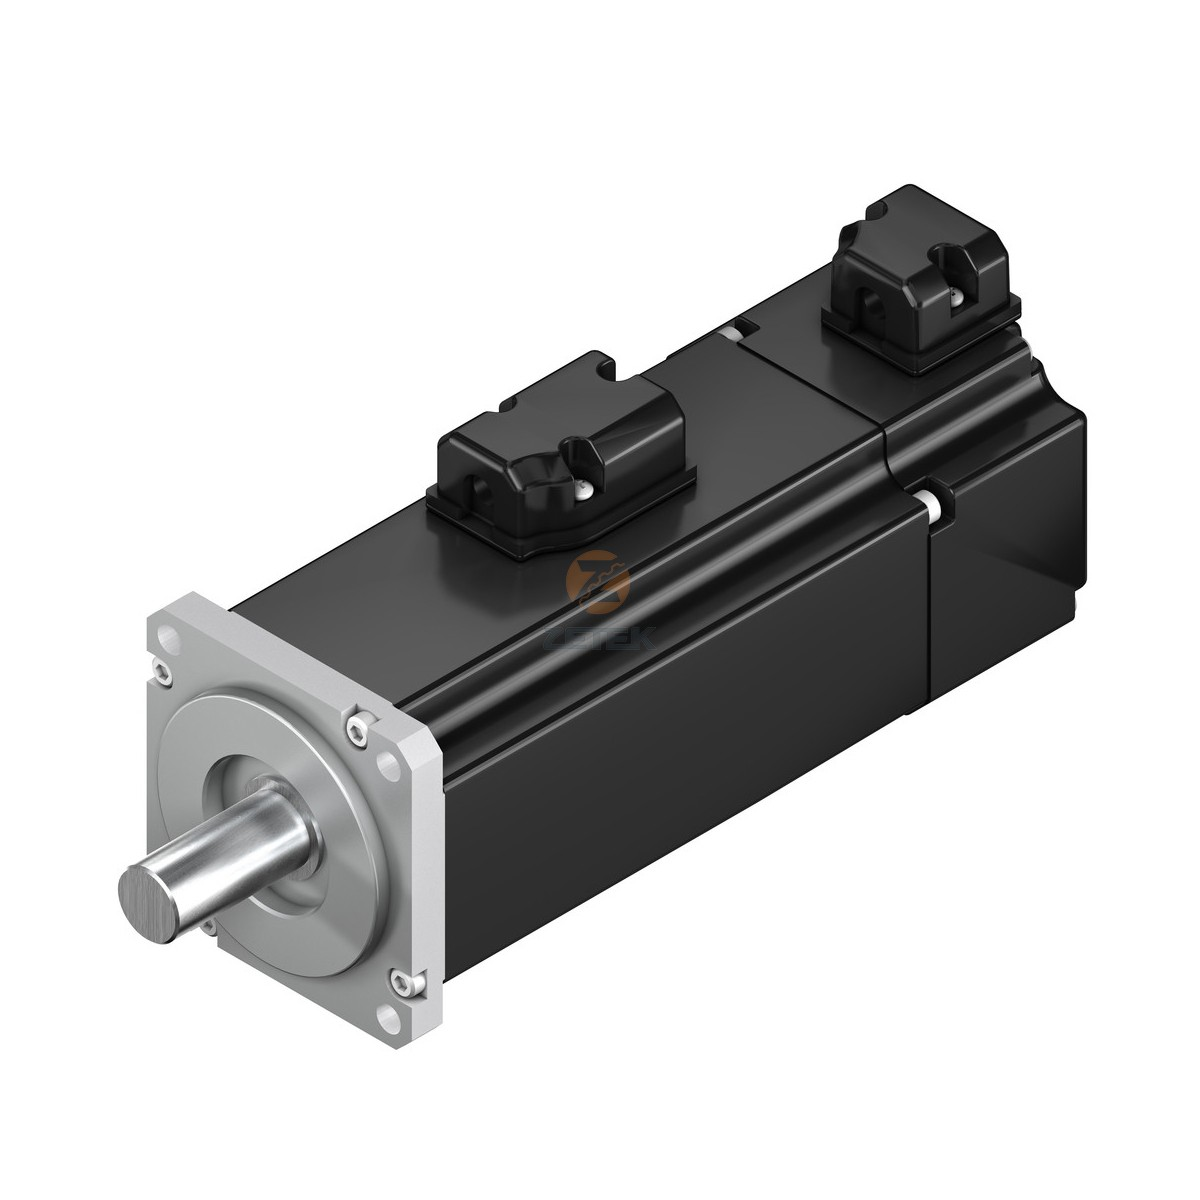 Серводвигатель HIWIN FRLS402B506D (0.4KW, 220V, 3000RPM, 13-BIT, with Brake)